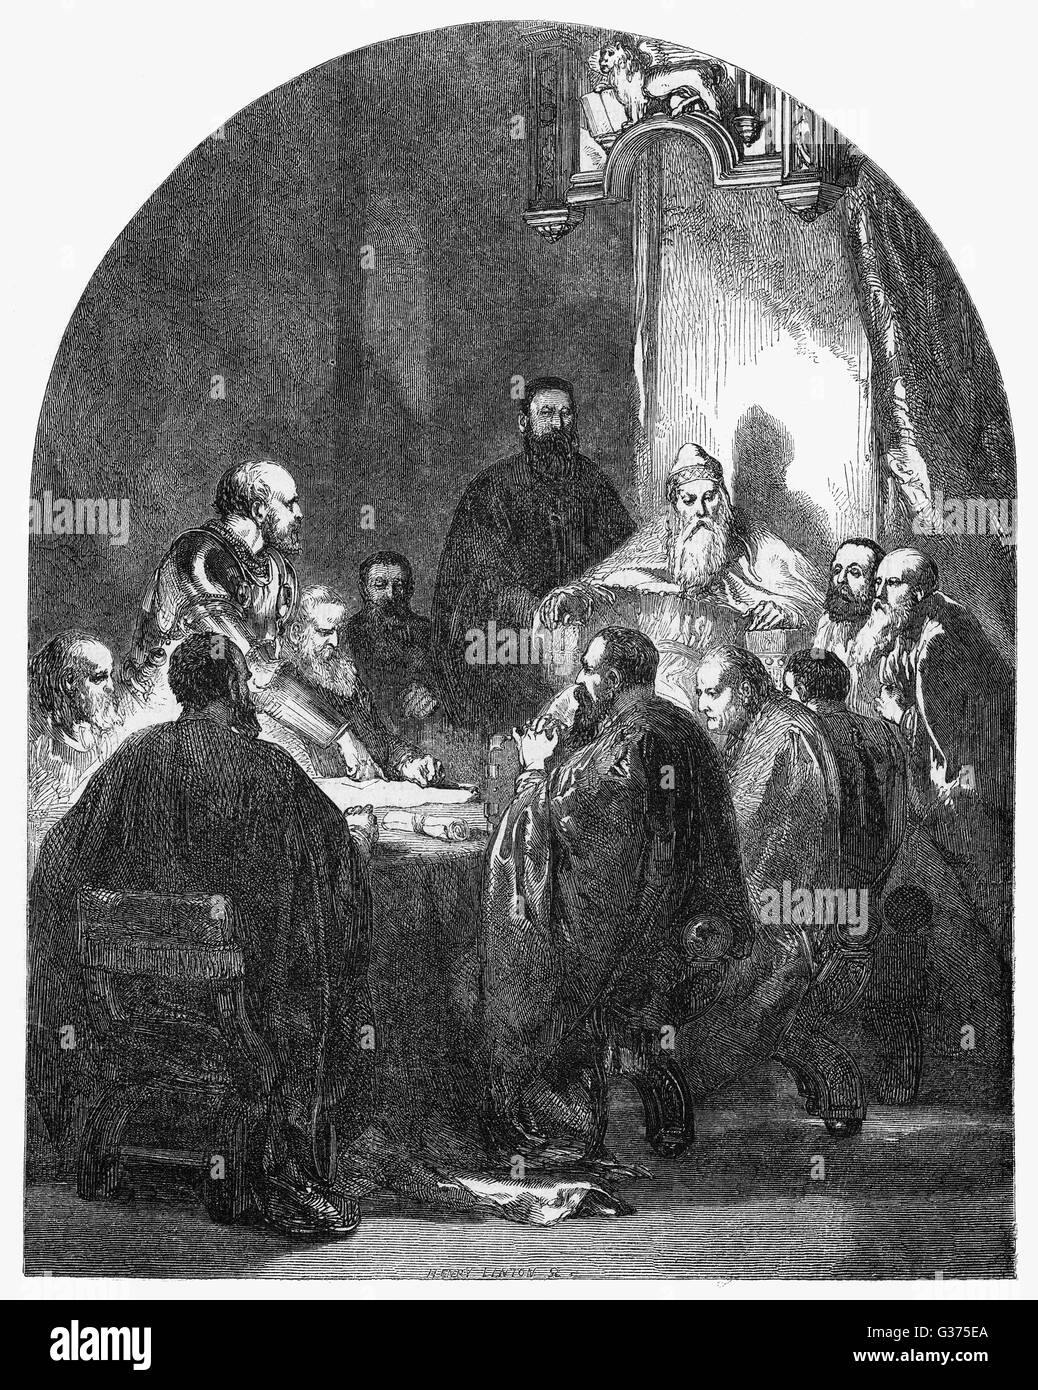 CARLO ZENO Venetian admiral, depicted  justifying his actions to the  Council of Ten.       Date: 1334 - 1410 - Stock Image